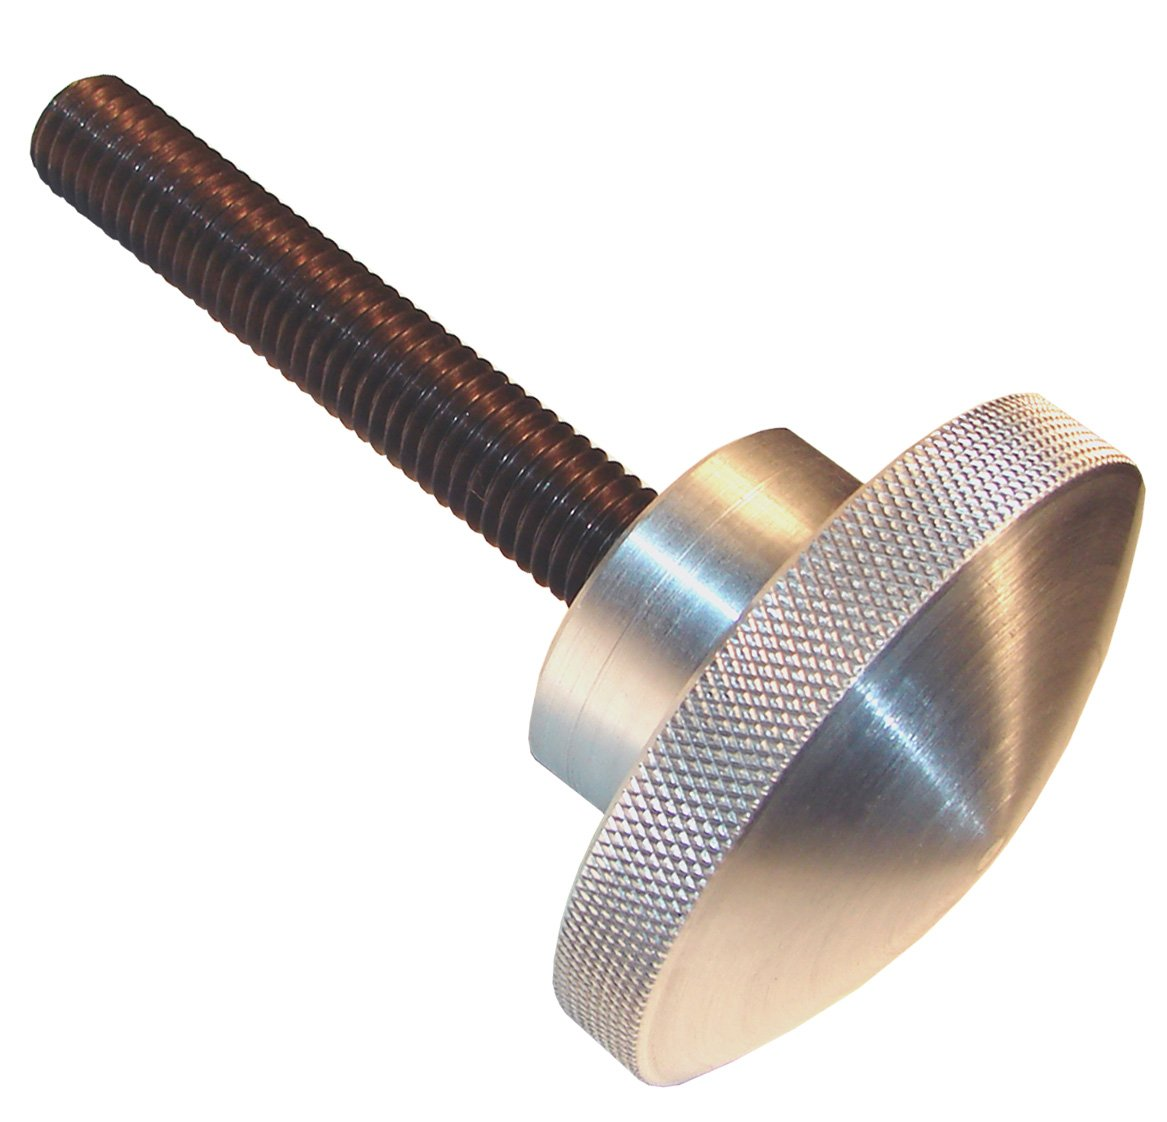 Morton Aluminum Domed Knurled Knob Assemblies, Inch Size, 3/8-16 Thread Size, 3'' Thread Length